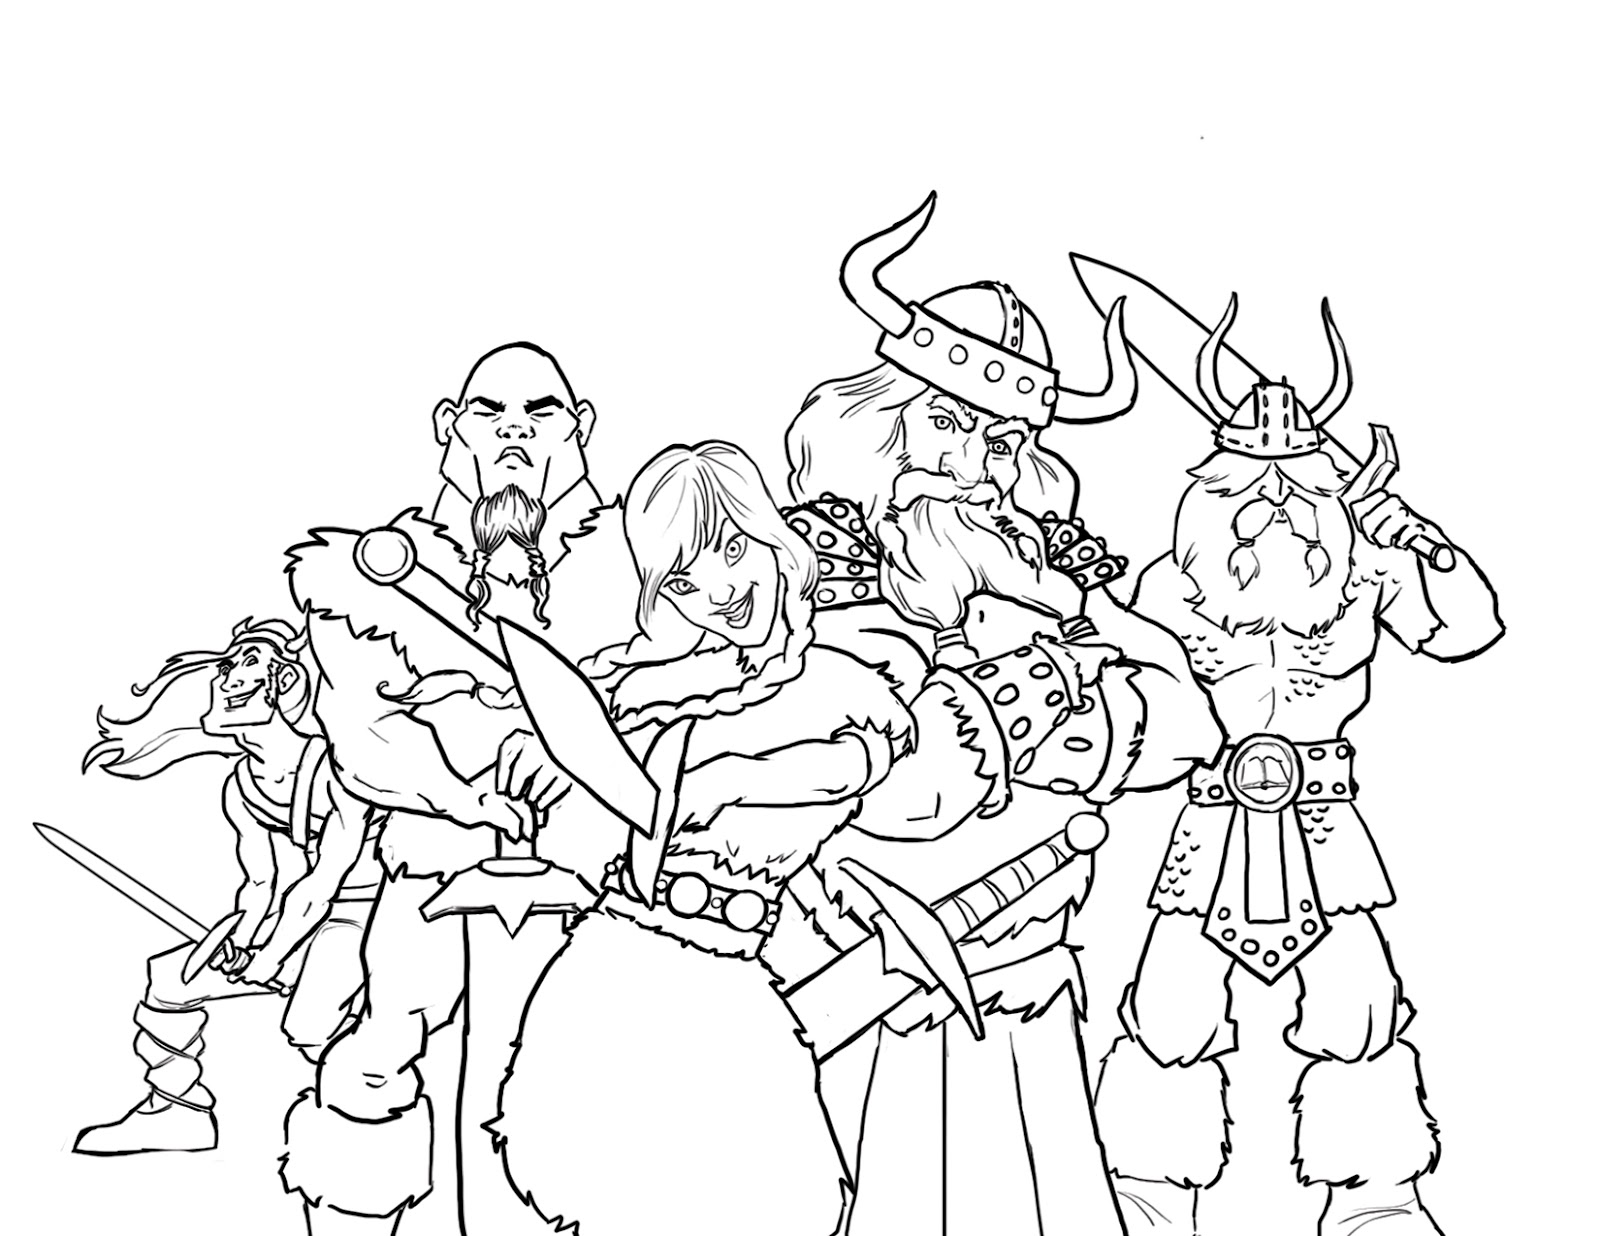 viking coloring pages pin by muse printables on printable patterns at coloring viking pages